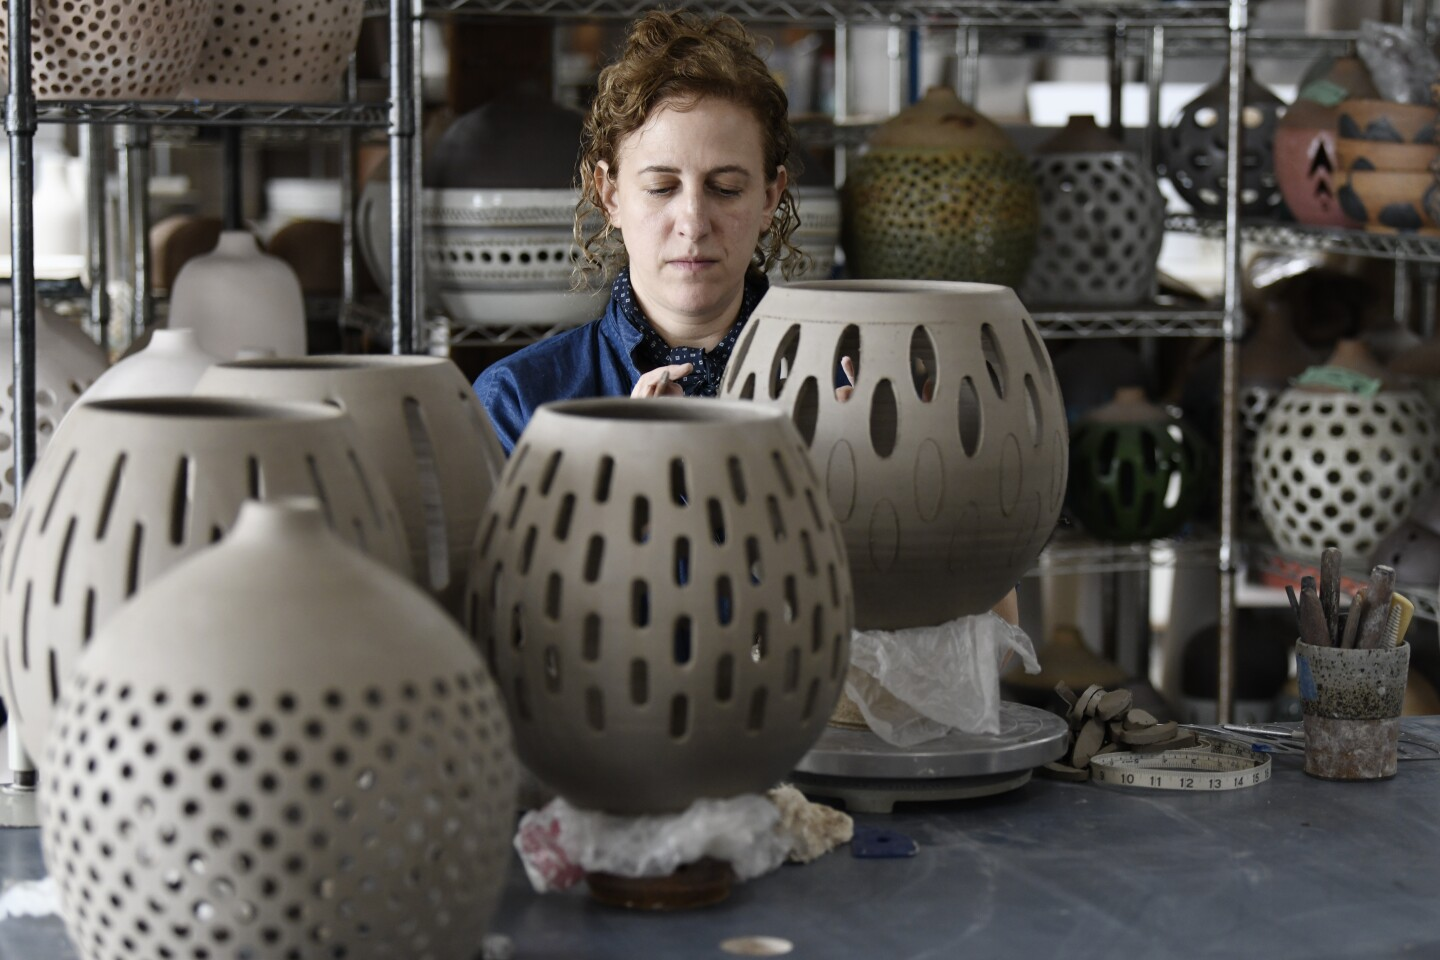 Ceramicist and artist Heather Levine works on a pendant in her studio.